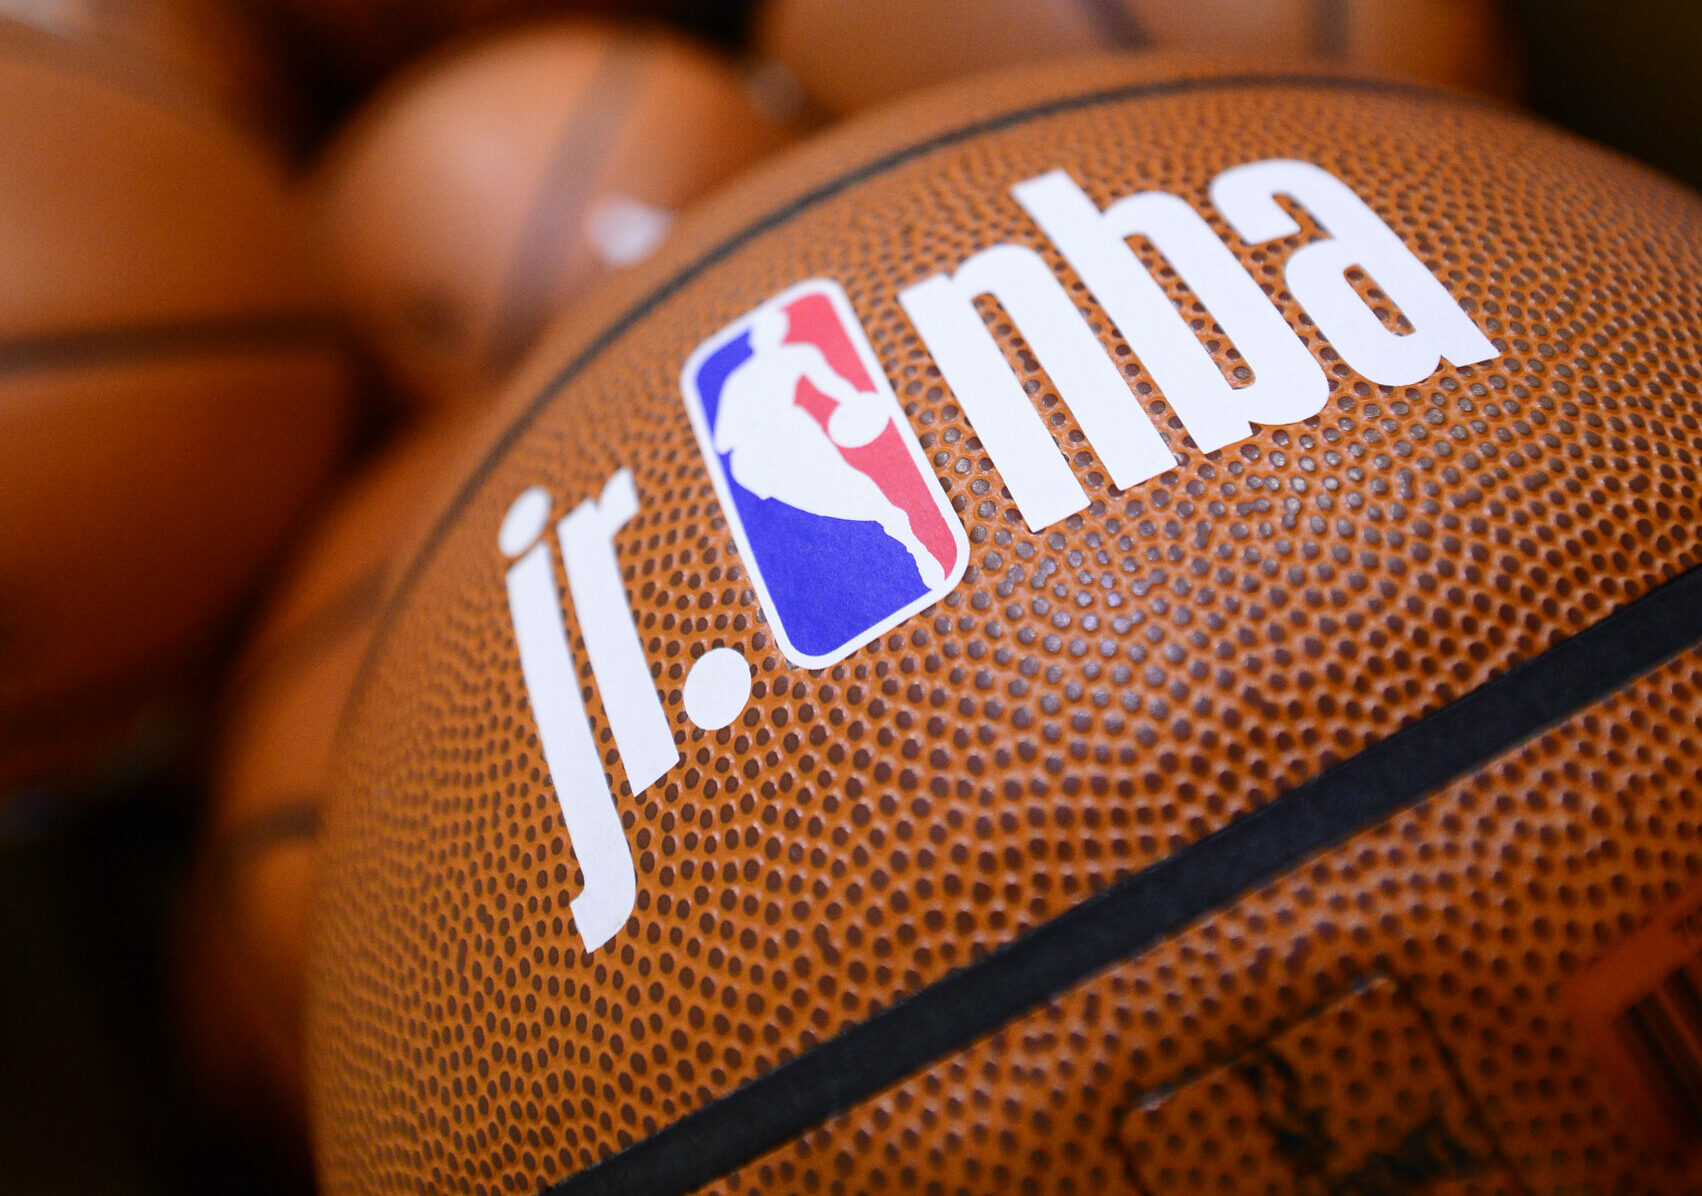 Jr. NBA brings together 18 youth athletes from across the U.S. to form first-ever Jr. NBA Court of Leaders